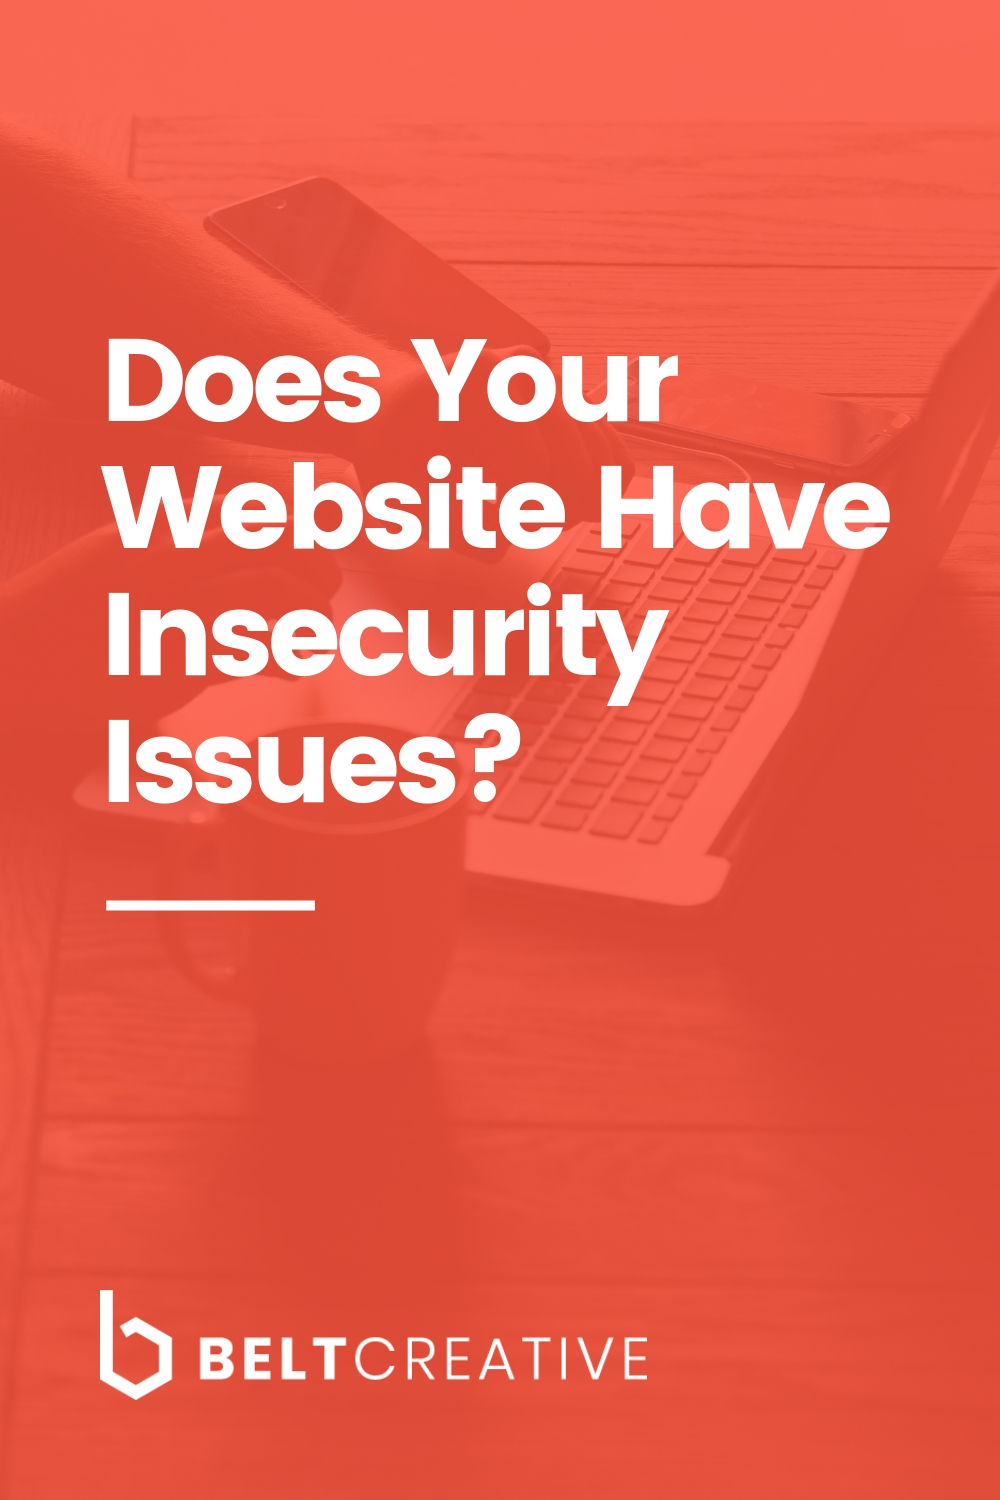 Does Your Website Have Insecurity Issues?.jpg